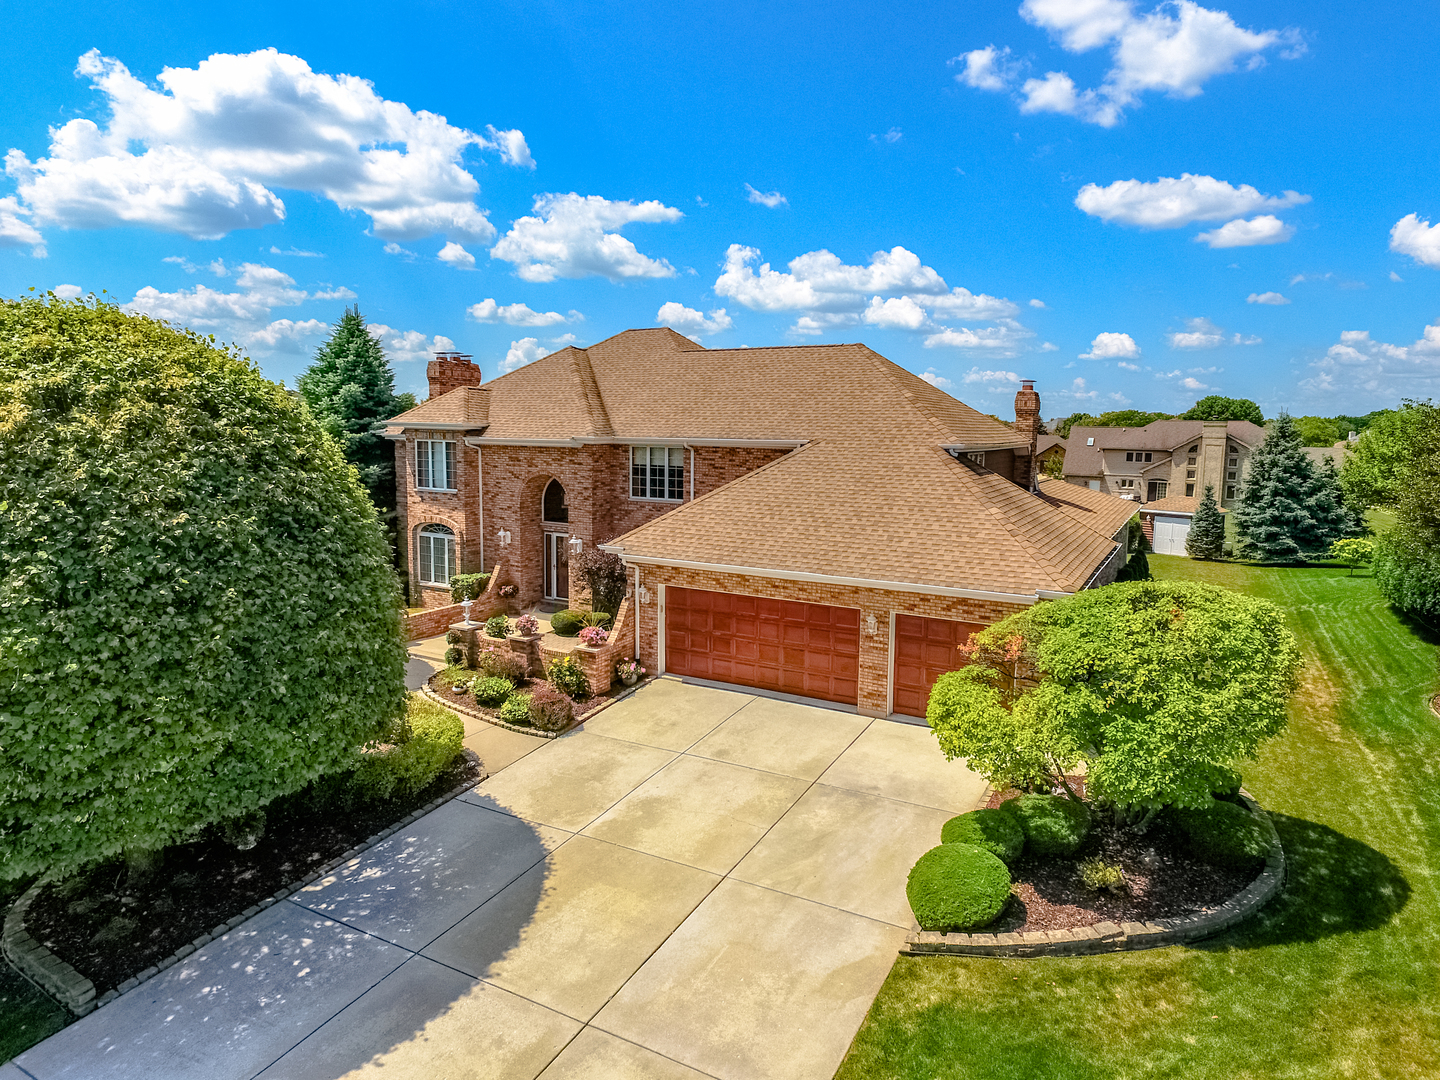 16860 Pineview Drive, Homer Glen, Illinois